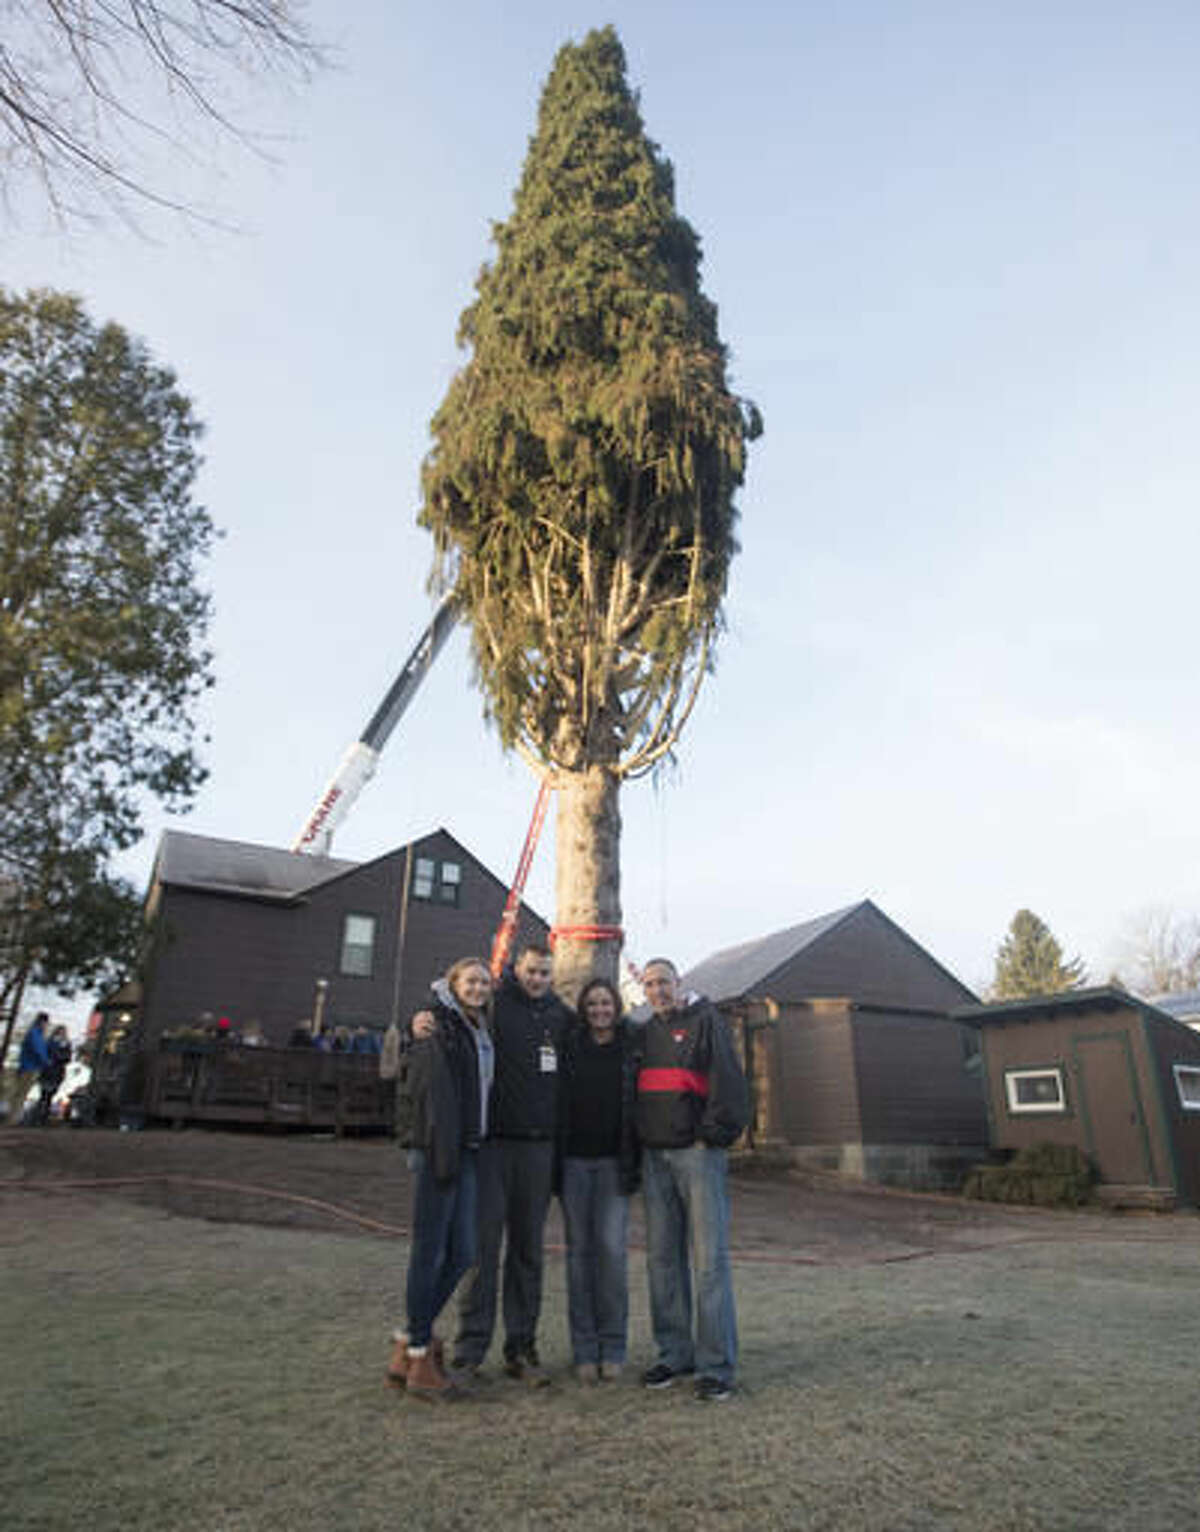 Graig Eichler, right, his wife Angie and their children Ava and Brock pose in front of a 94-foot Norway spruce that will serve as the Christmas tree at Rockefeller Center on Thursday, Nov. 10, 2016, in Oneonta, N.Y. The spruce is due to arrive Saturday in Manhattan, about 140 miles away. (AP Photo/Mike Groll)